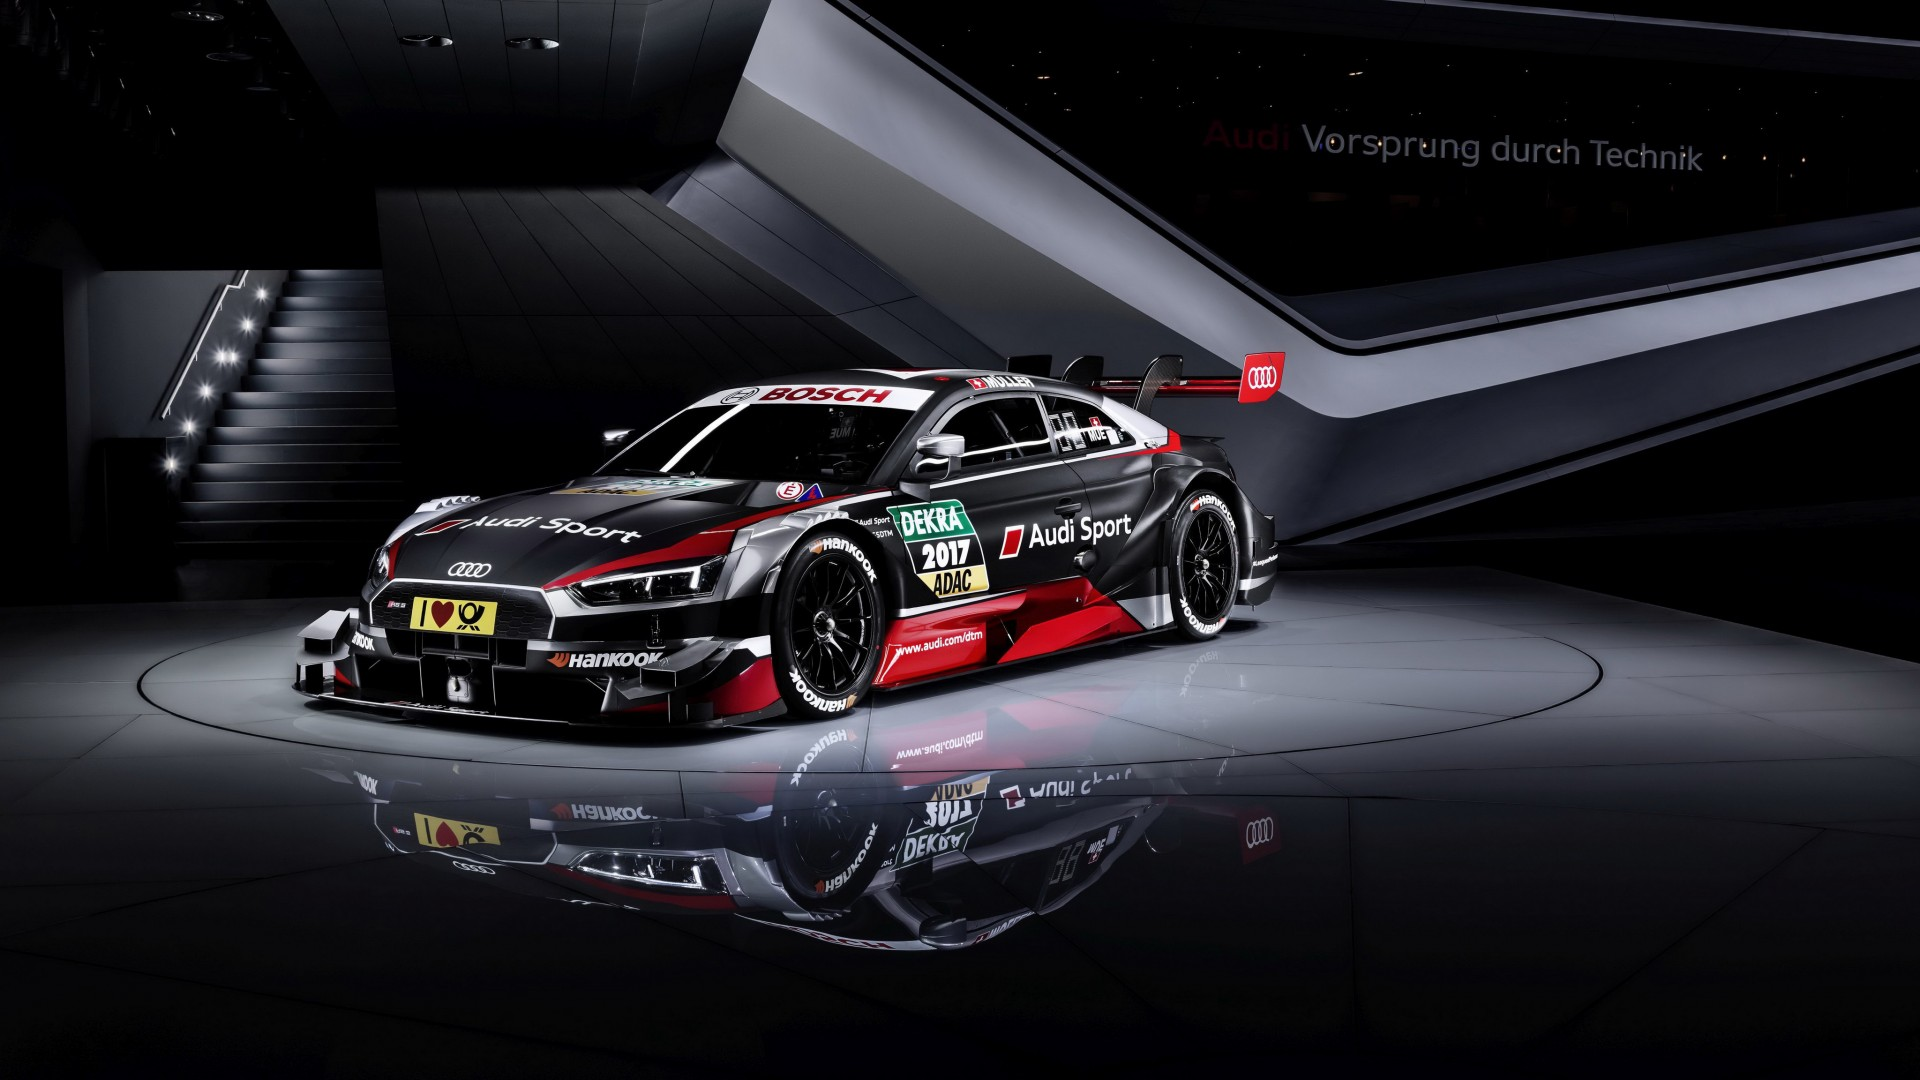 2018 Audi Rs 5 Coupe Dtm Wallpaper Hd Car Wallpapers